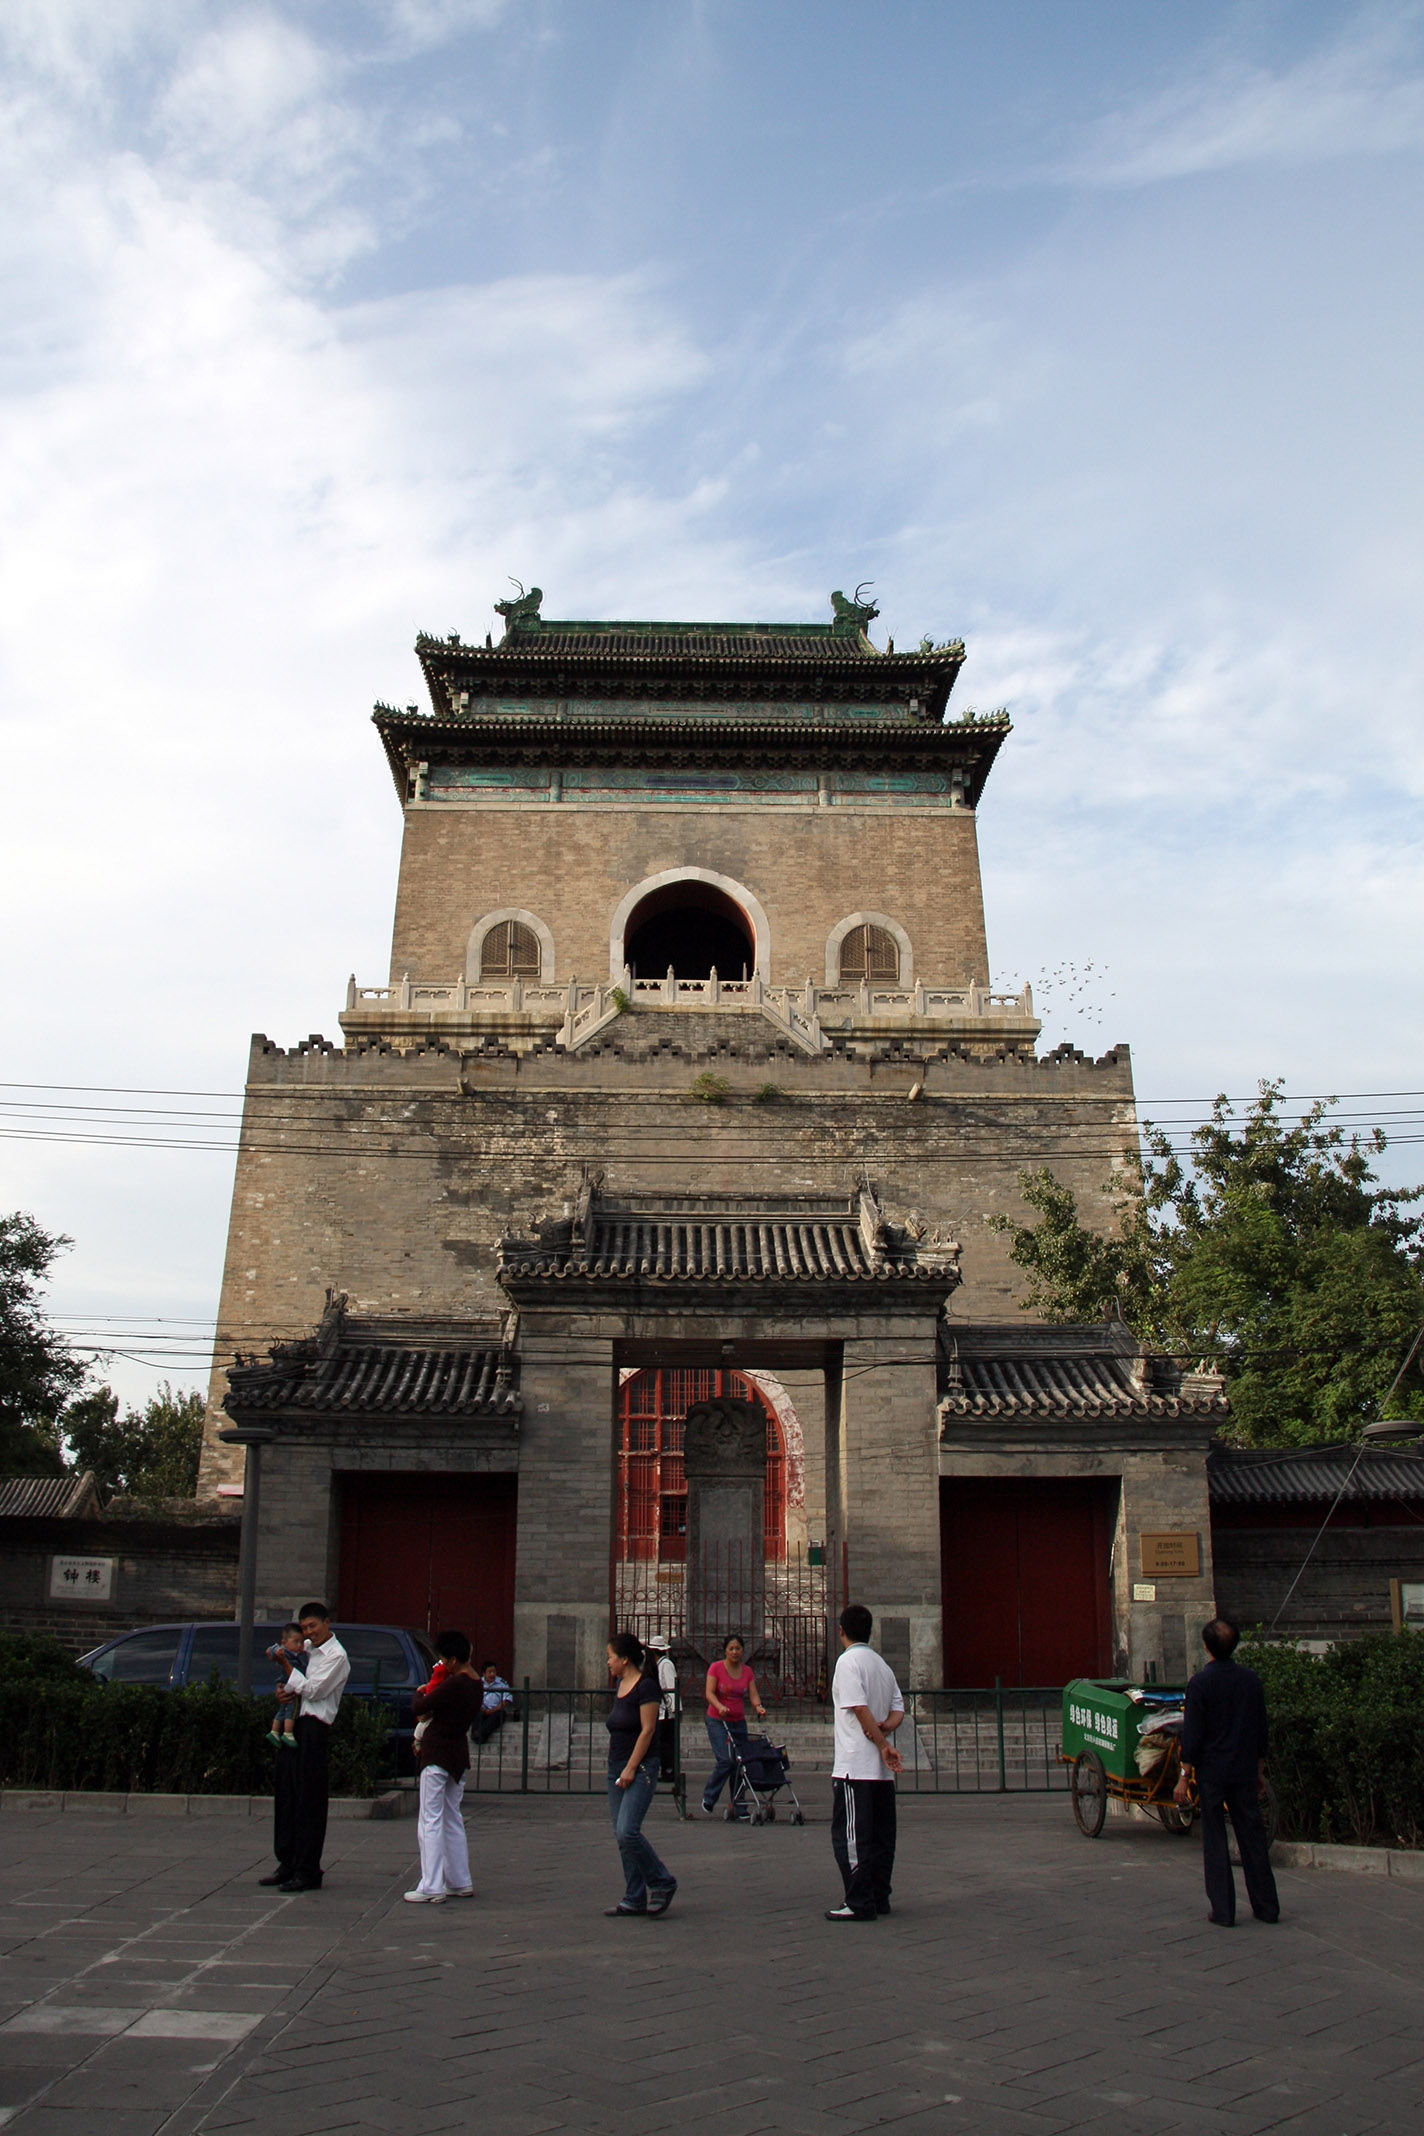 Gulou_Zhonglou_DrumBellTower_1a.jpg - The drumtower is north of the forbidden city...